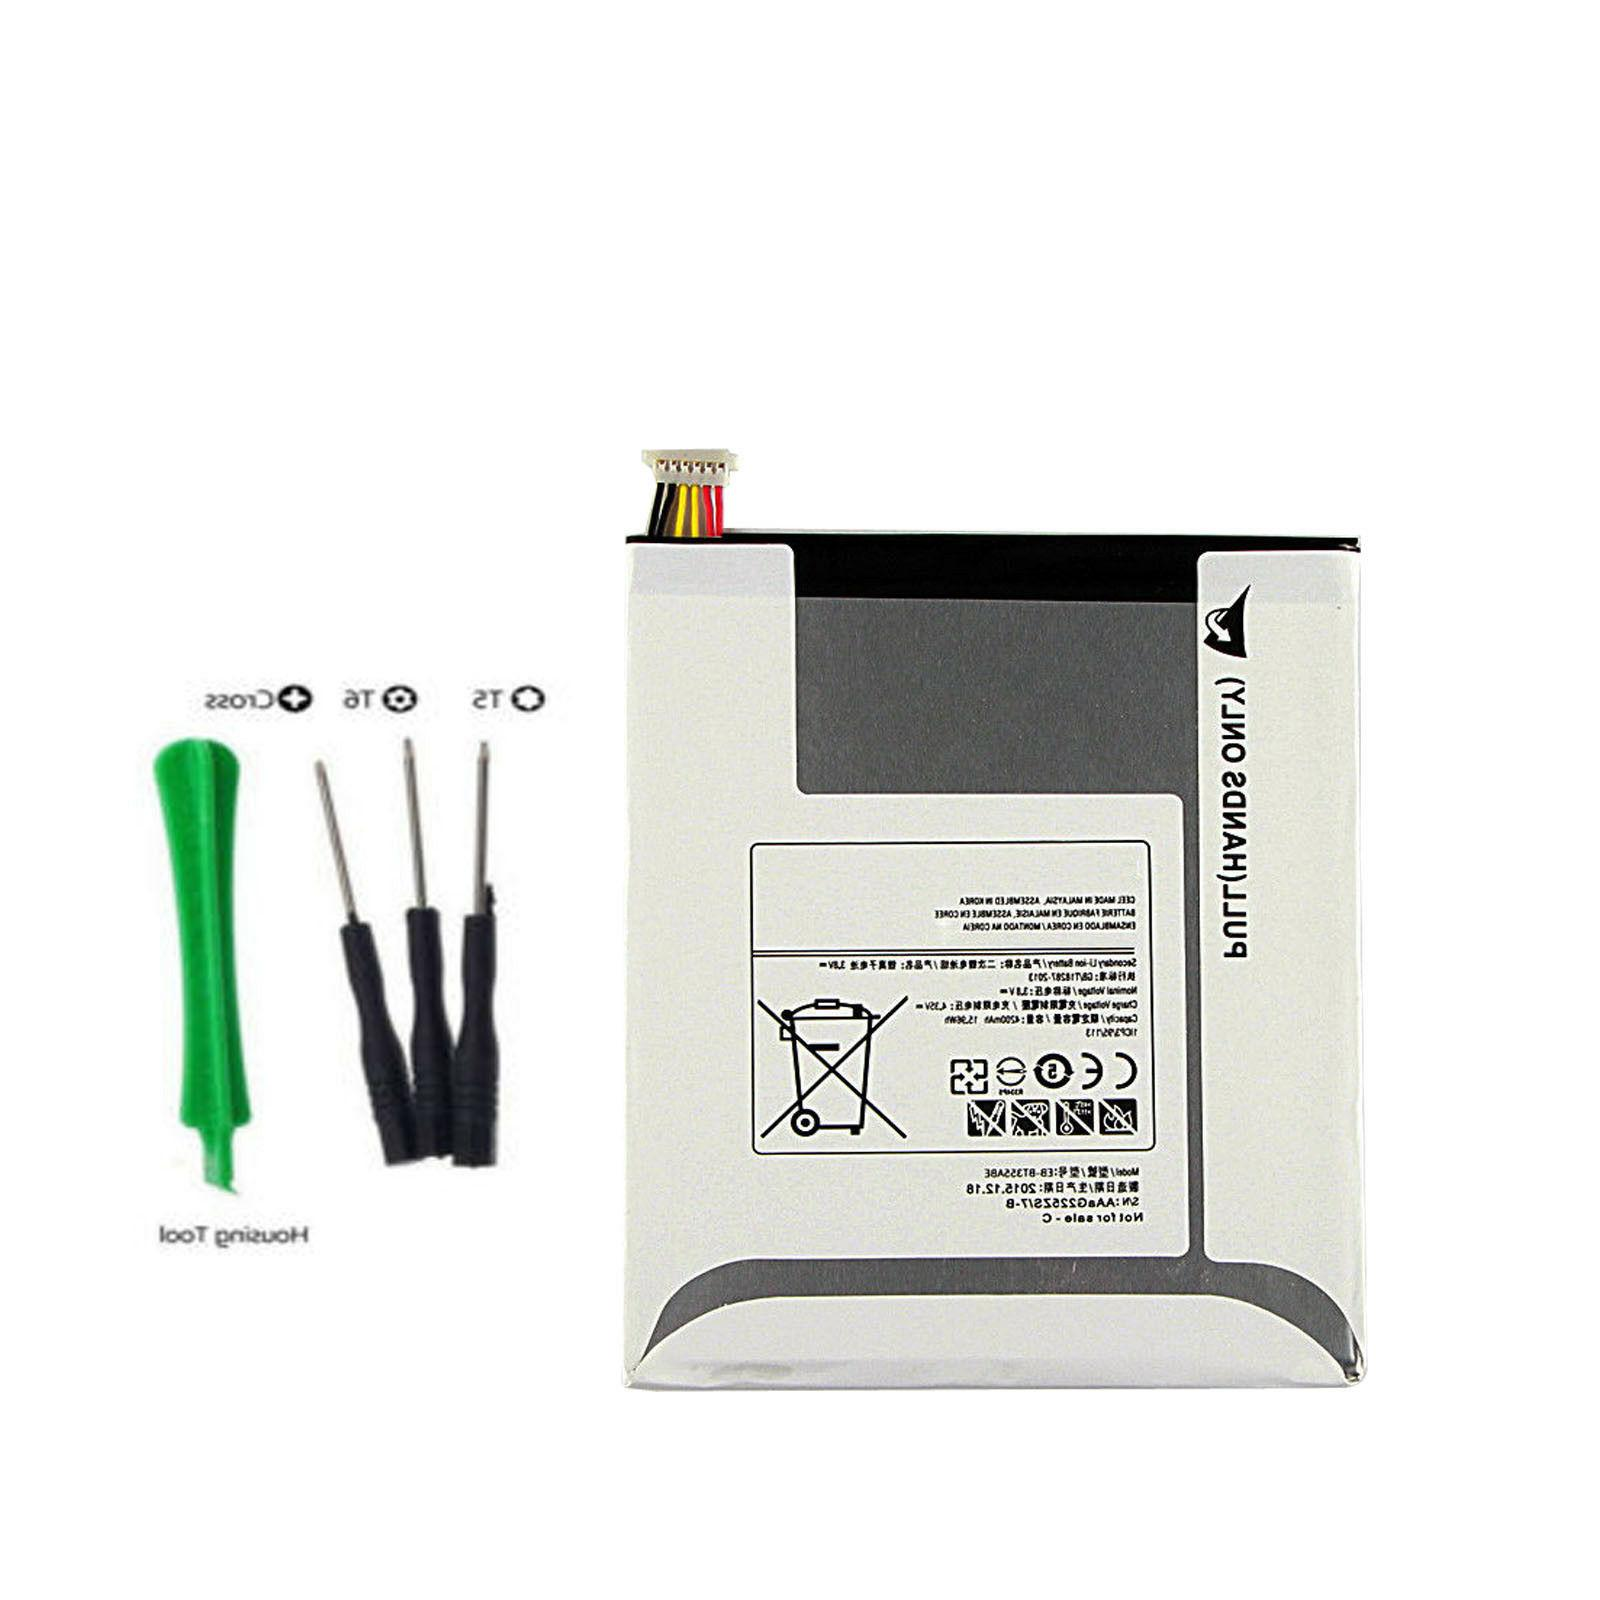 NEW Replacement Battery For Samsung GALAXY Tab A 8.0 SM-P350